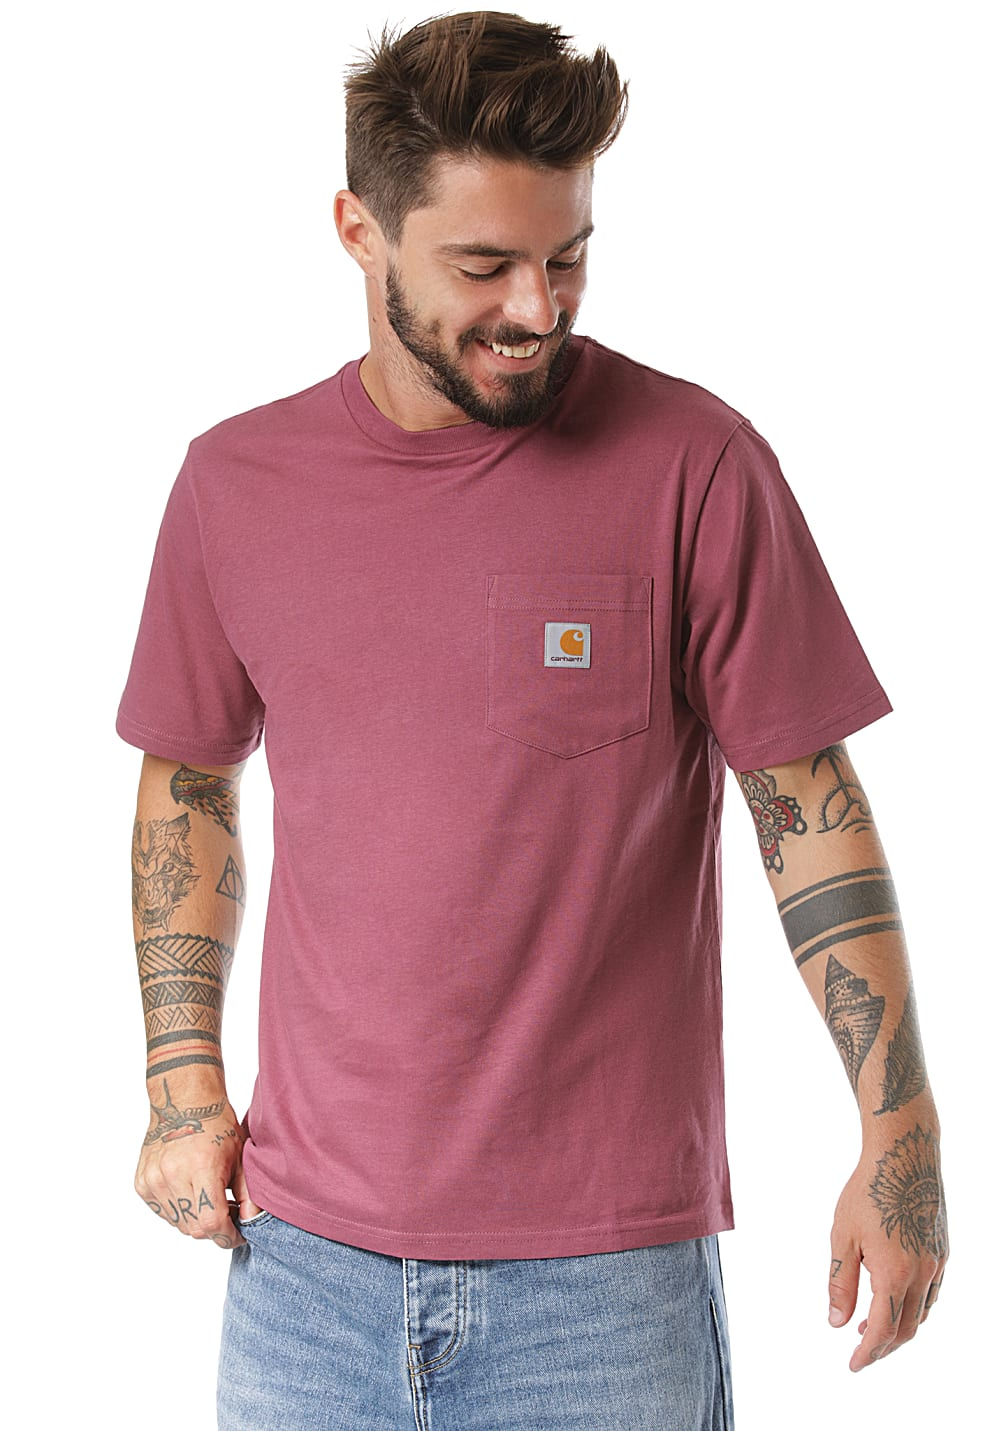 Carhartt WIP Pocket T shirt pour Homme Rose Planet Sports